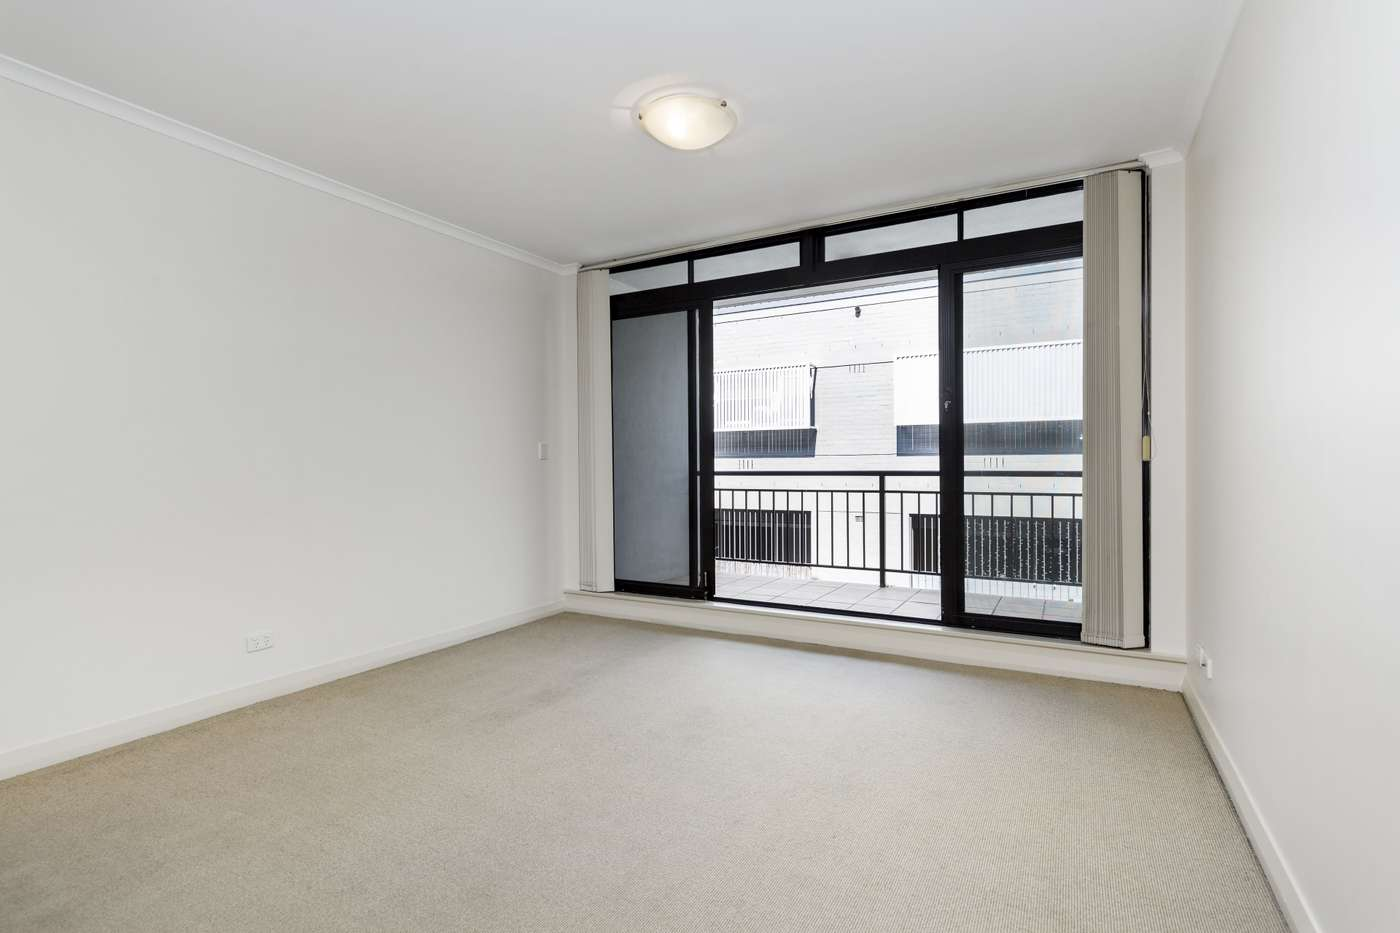 Main view of Homely studio listing, 14/173-175 Cathedral Street, Woolloomooloo, NSW 2011